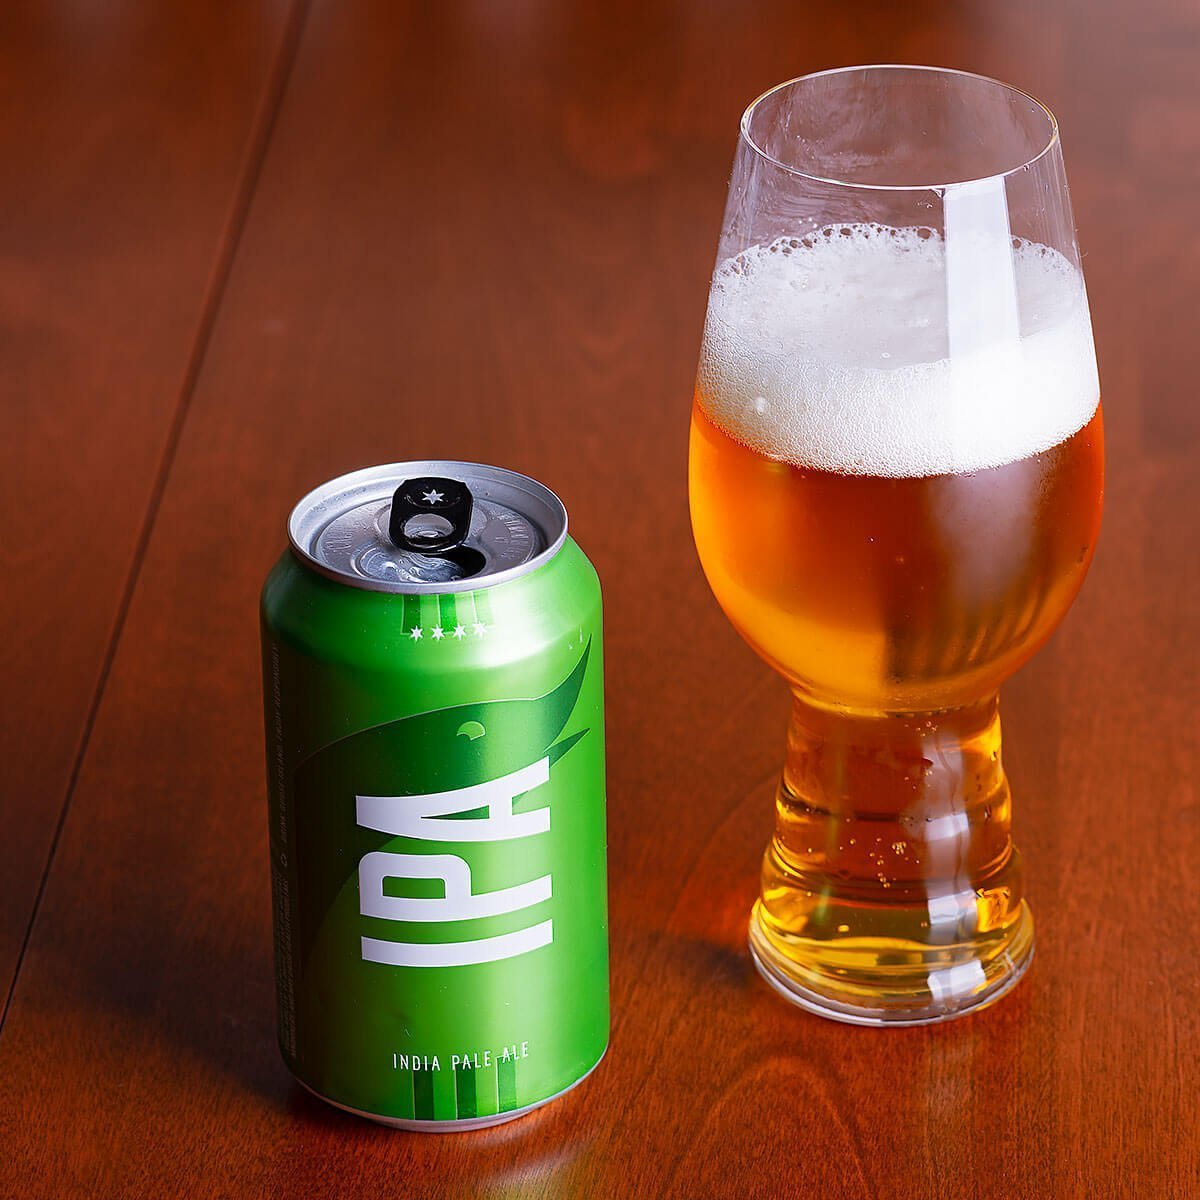 Goose Island IPA is an English-style IPA by Goose Island Beer Co. that blends floral, piney, and citrusy hops with just enough malt.